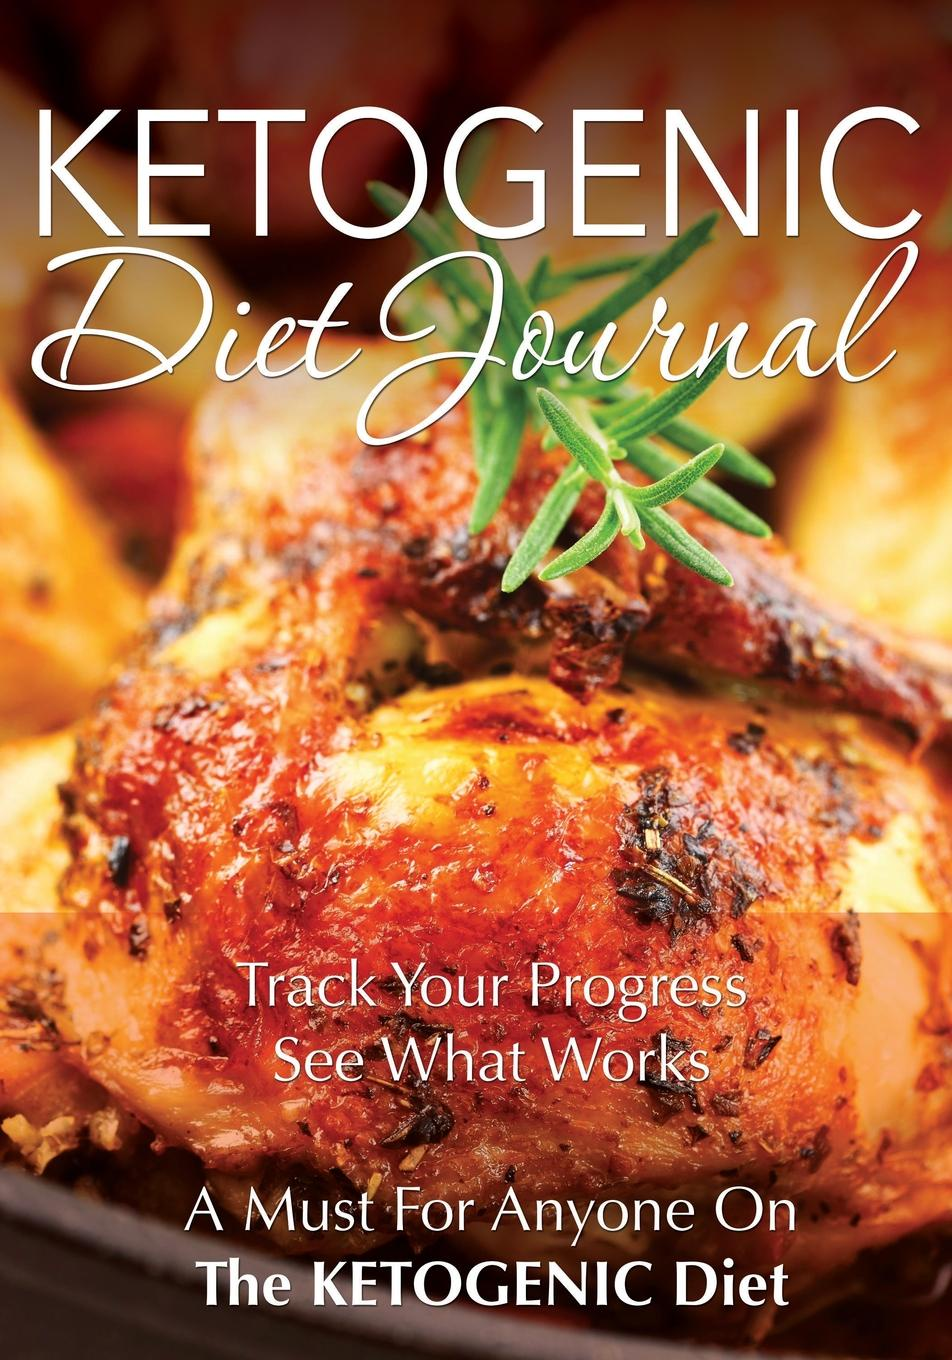 Speedy Publishing LLC Ketogenic Diet Journal. Track Your Progress See What Works: A Must for Anyone on the